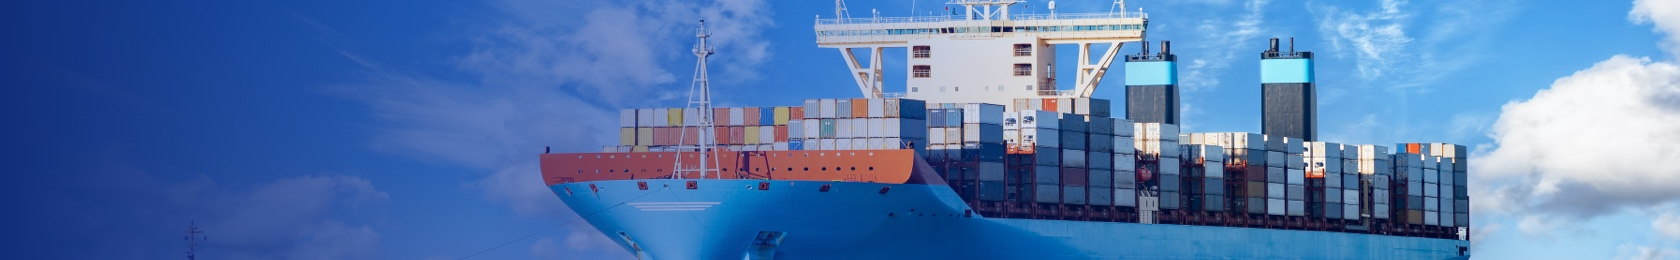 Port agency / Shipping agency services from MOL, Singapore, worldwide